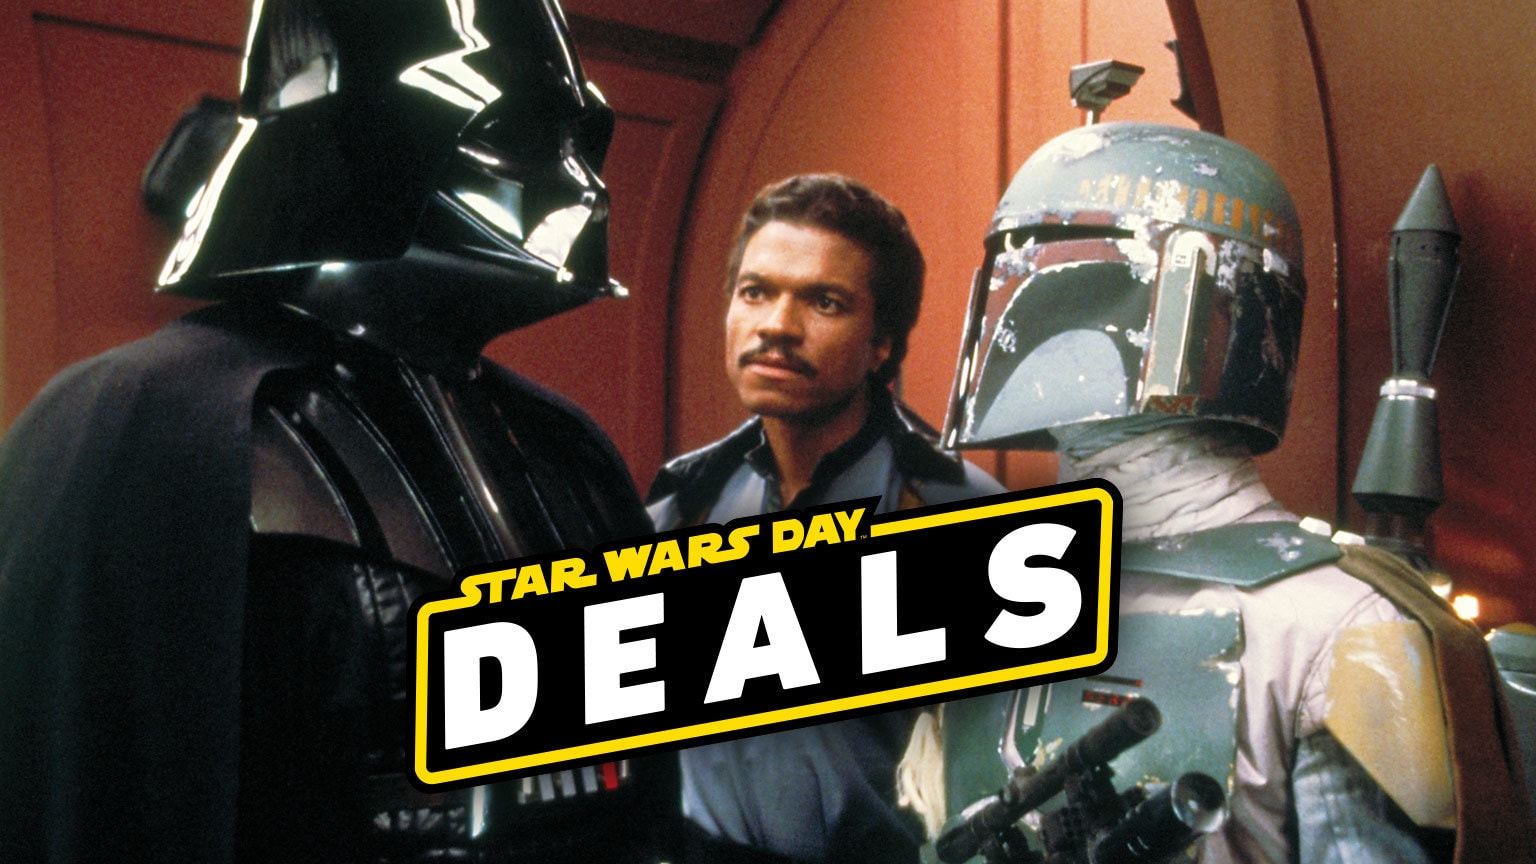 Updated: Star Wars Day 2020 Deals!